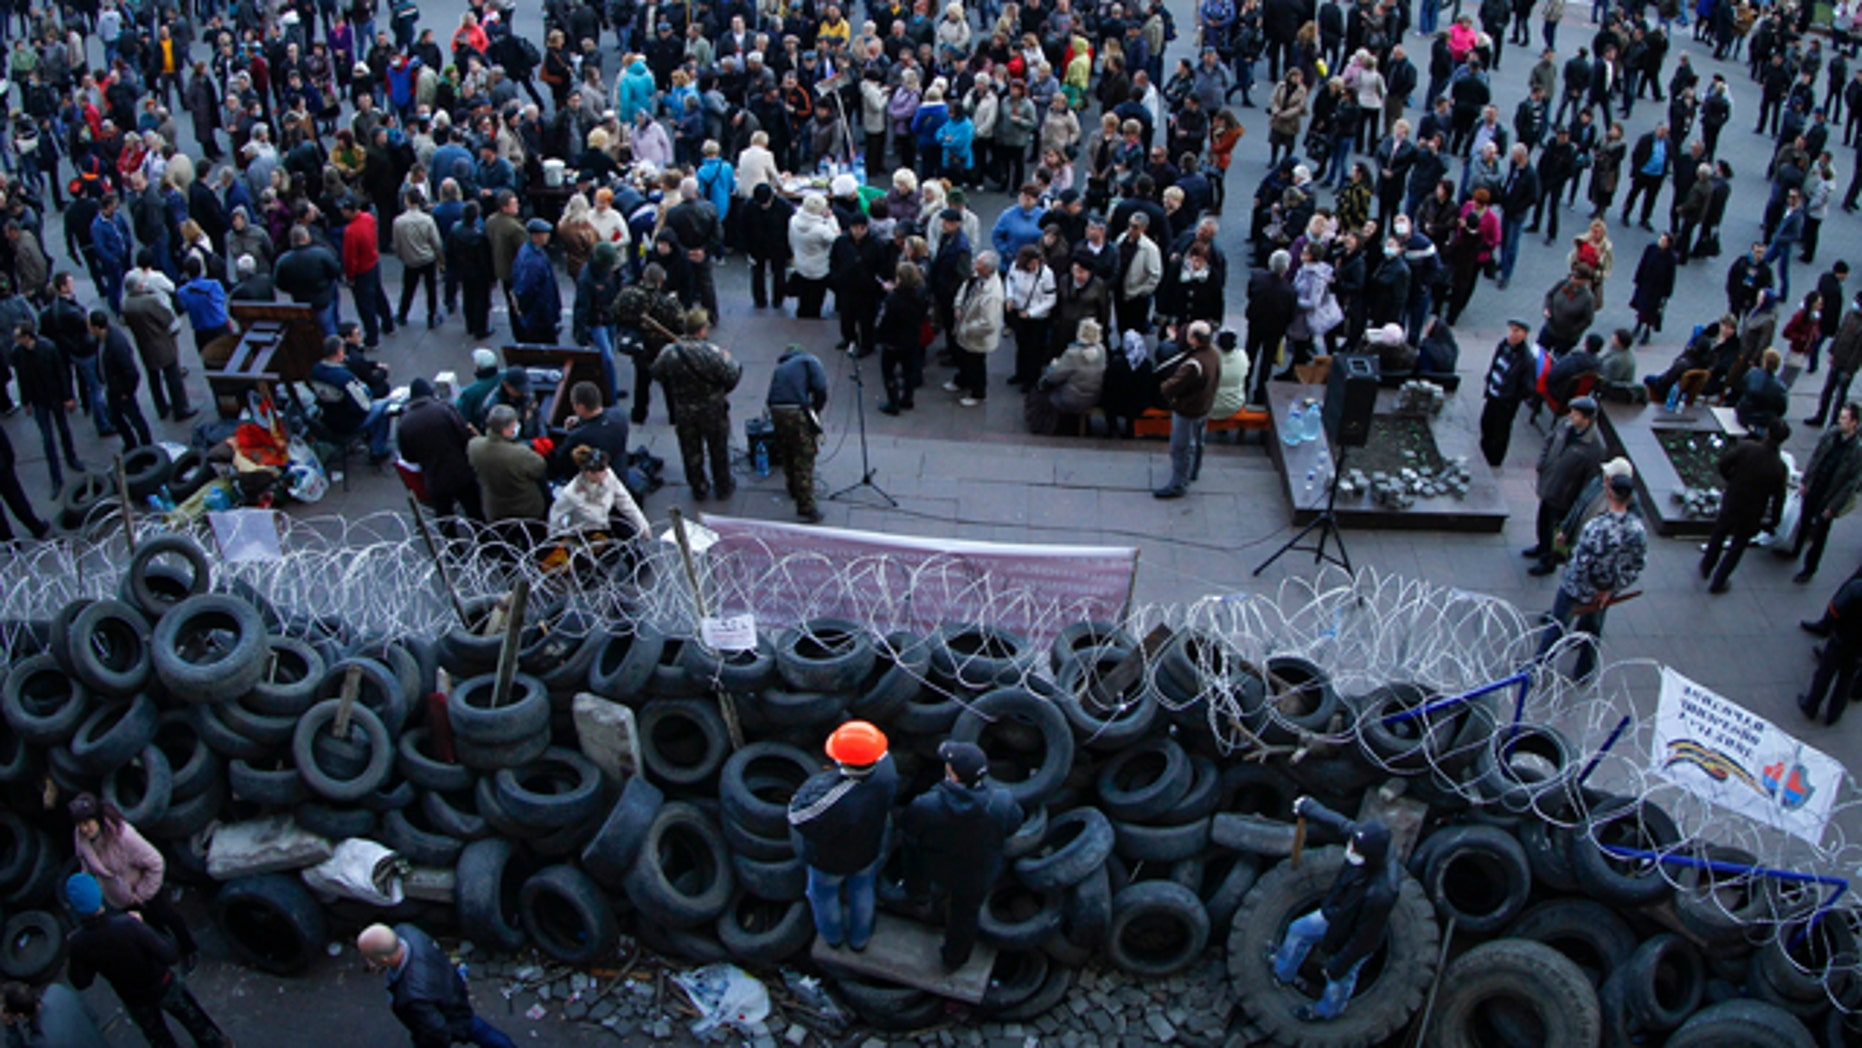 April 7, 2014: People gathered in front of a barricade at the regional administration building in Donetsk, Ukraine.   (AP Photo/Andrey Basevych)